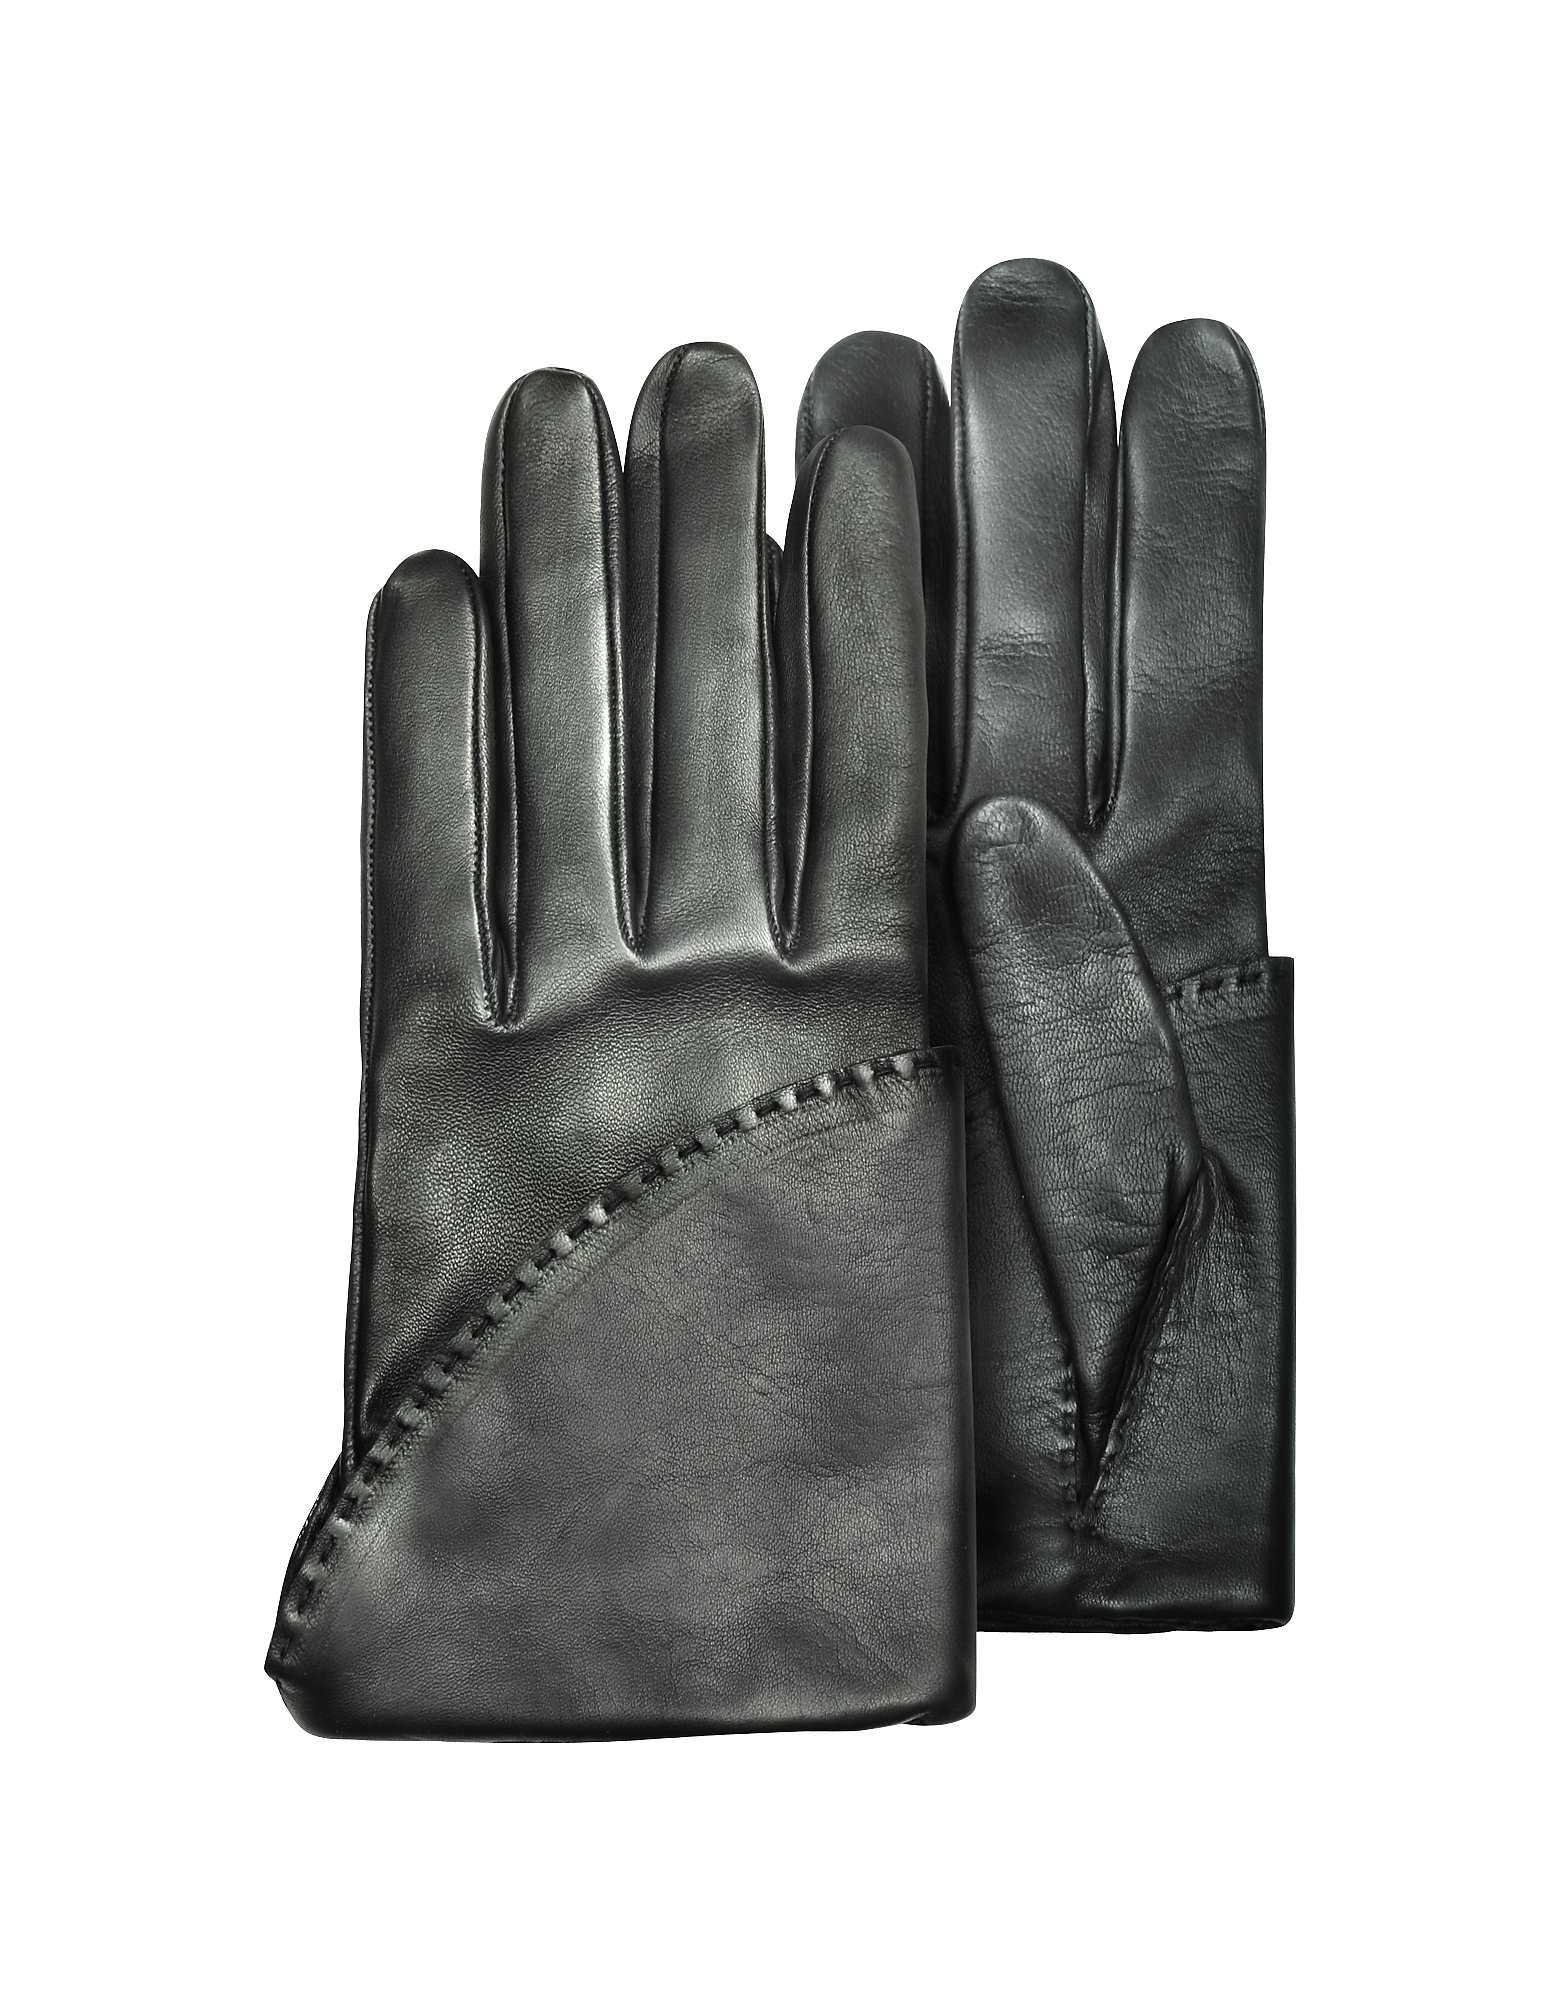 Pineider Women's Gloves, Women's Black Short Nappa Gloves w/ Silk Lining